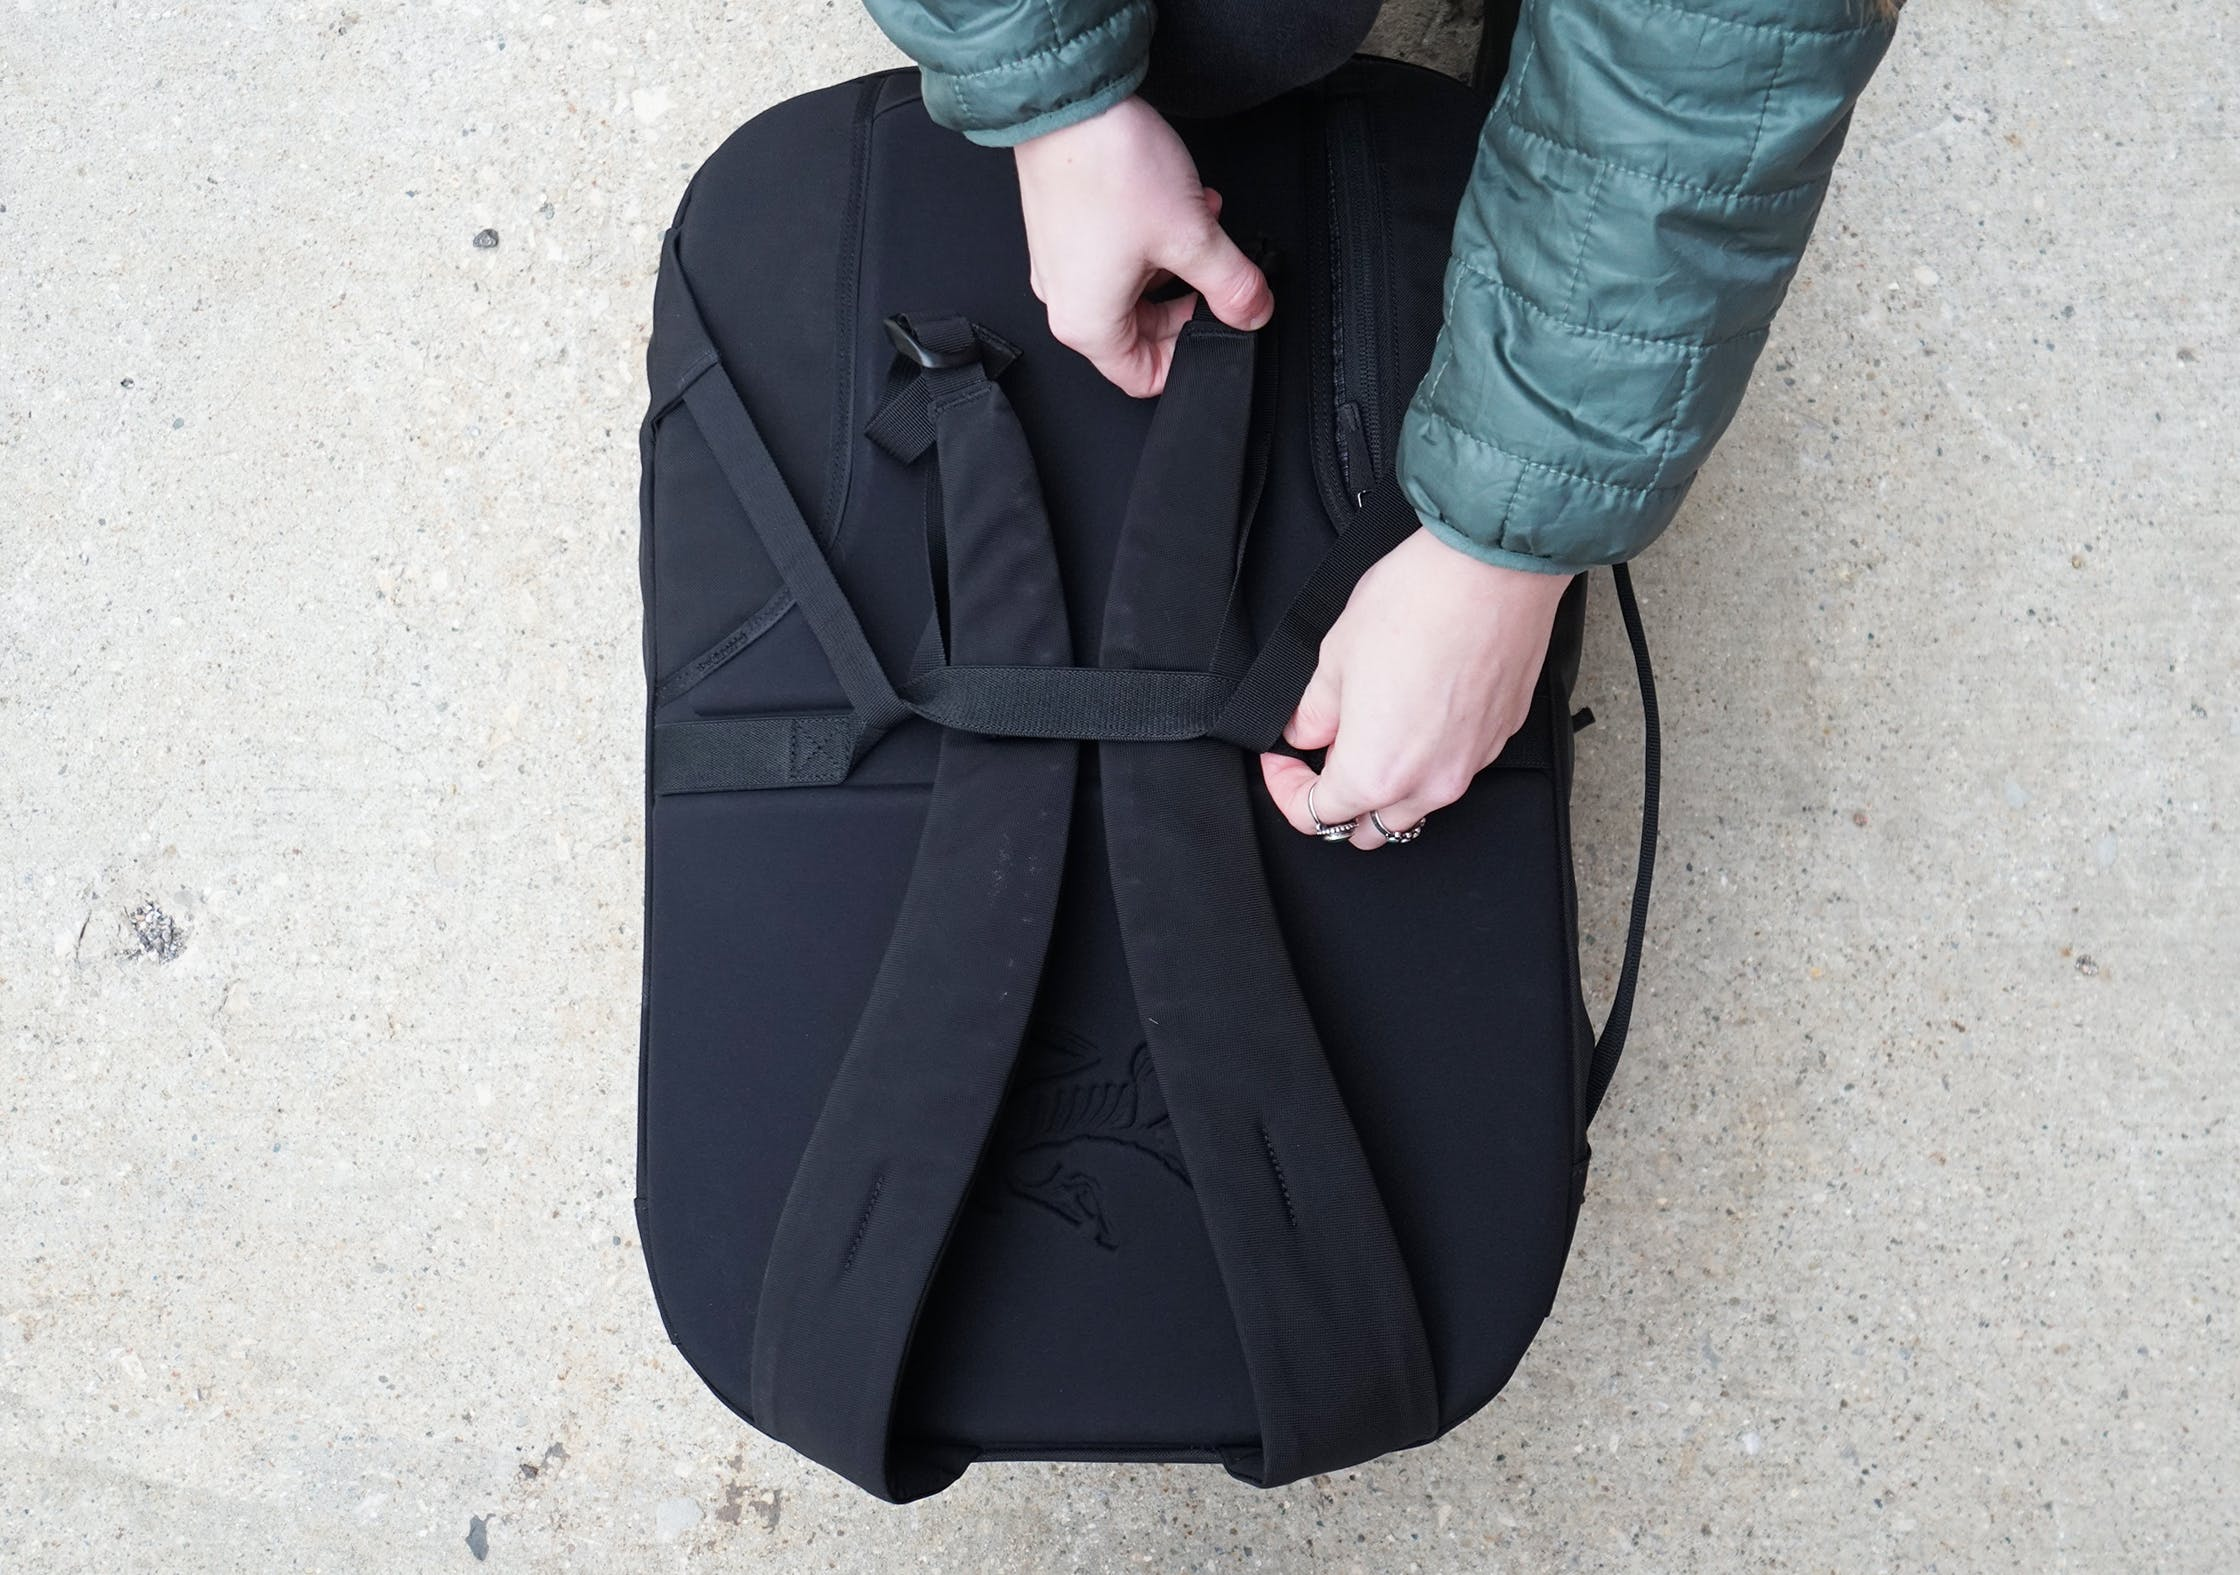 Arc'teryx Blade 28 Backpack Straps In Pass-through